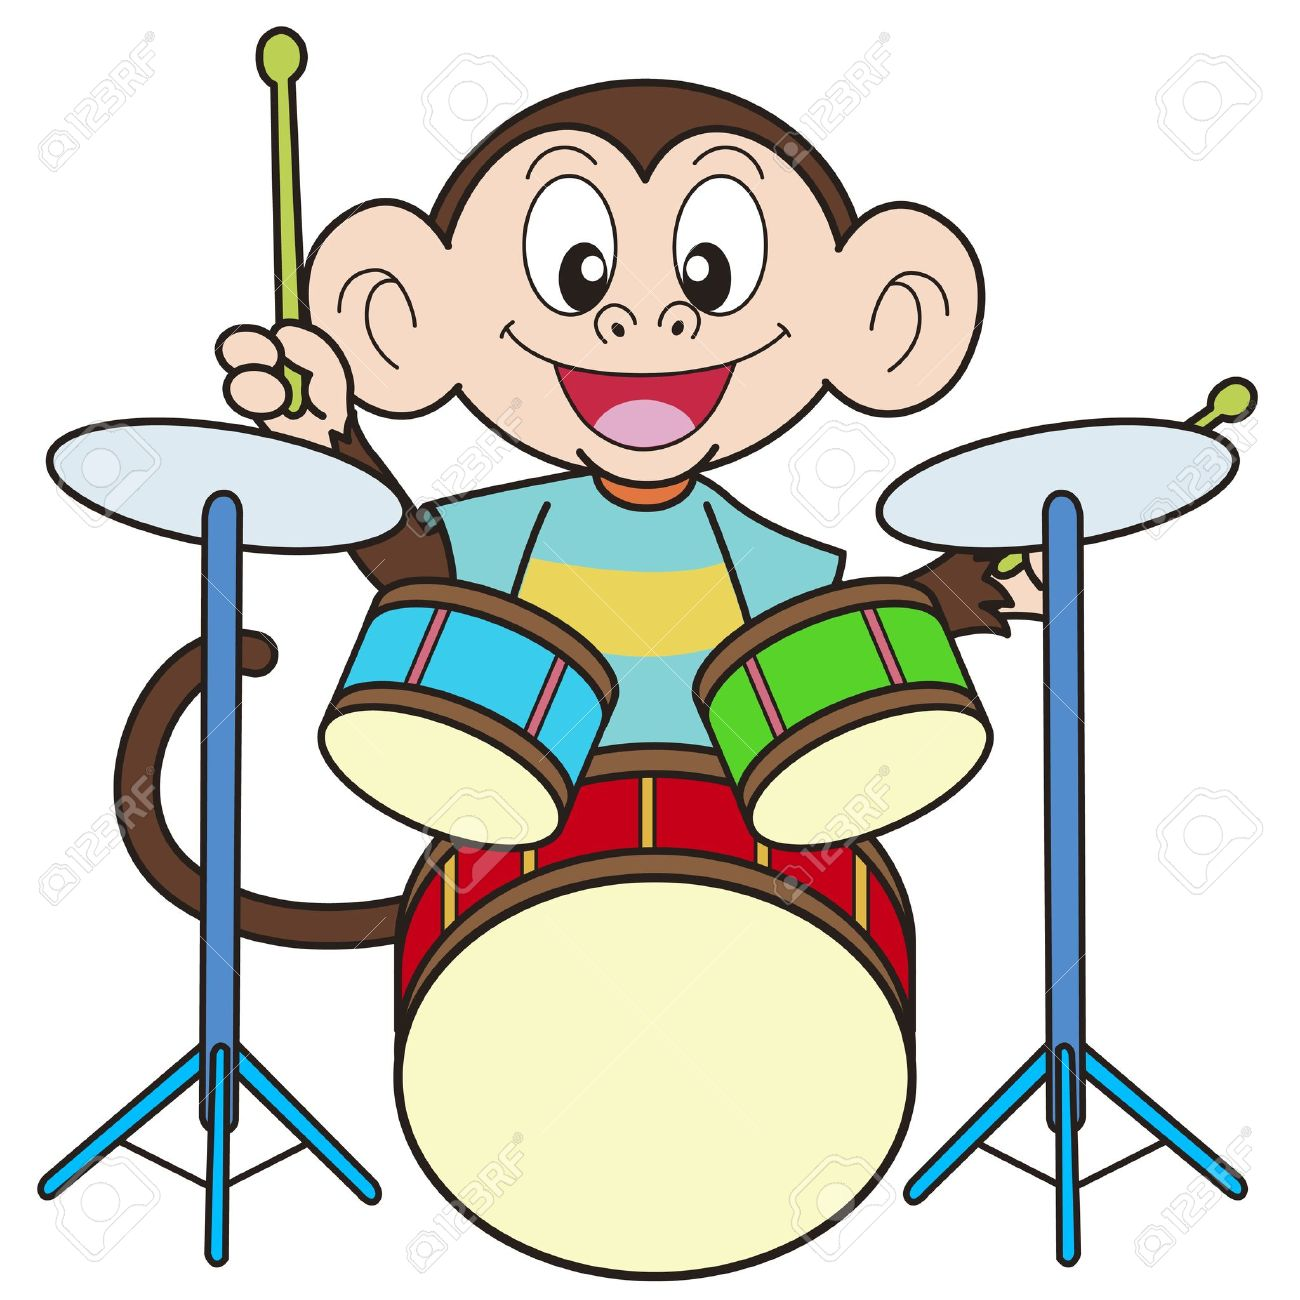 Cartoon Monkey Playing Drums Royalty Free Cliparts, Vectors, And.